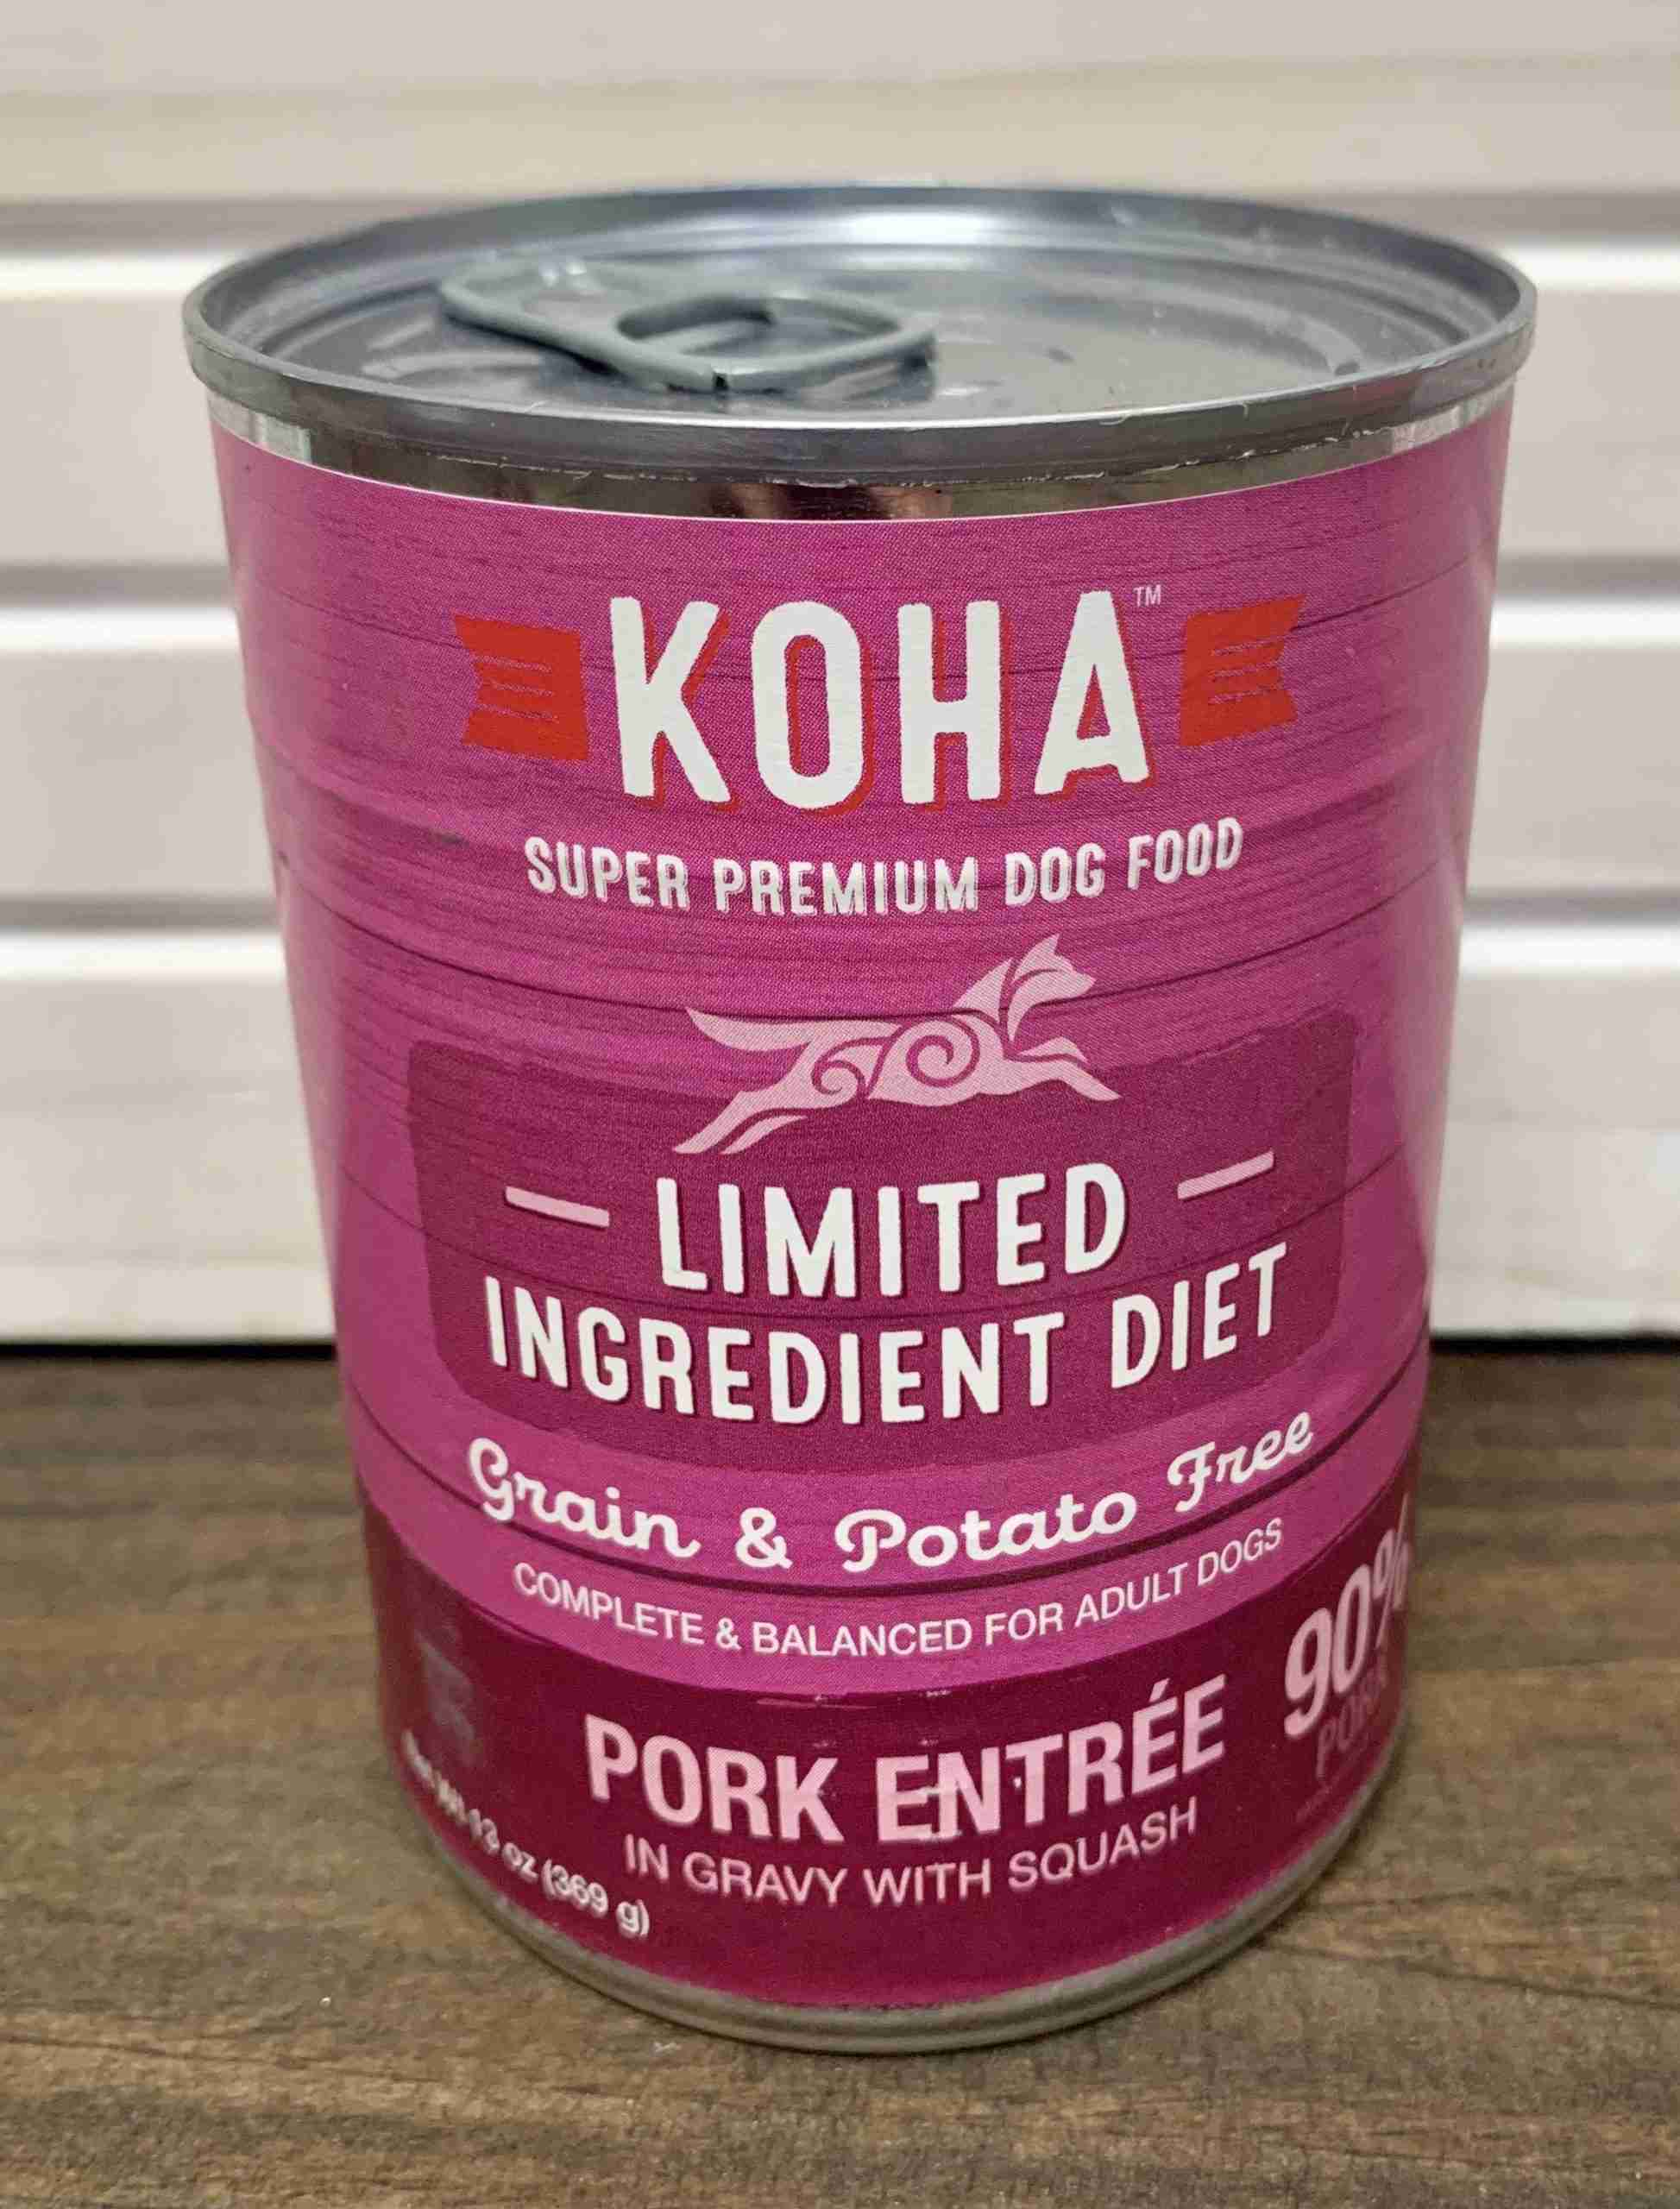 Koha Limited Ingredient Pork Entree for Dogs – One case (12 cans)